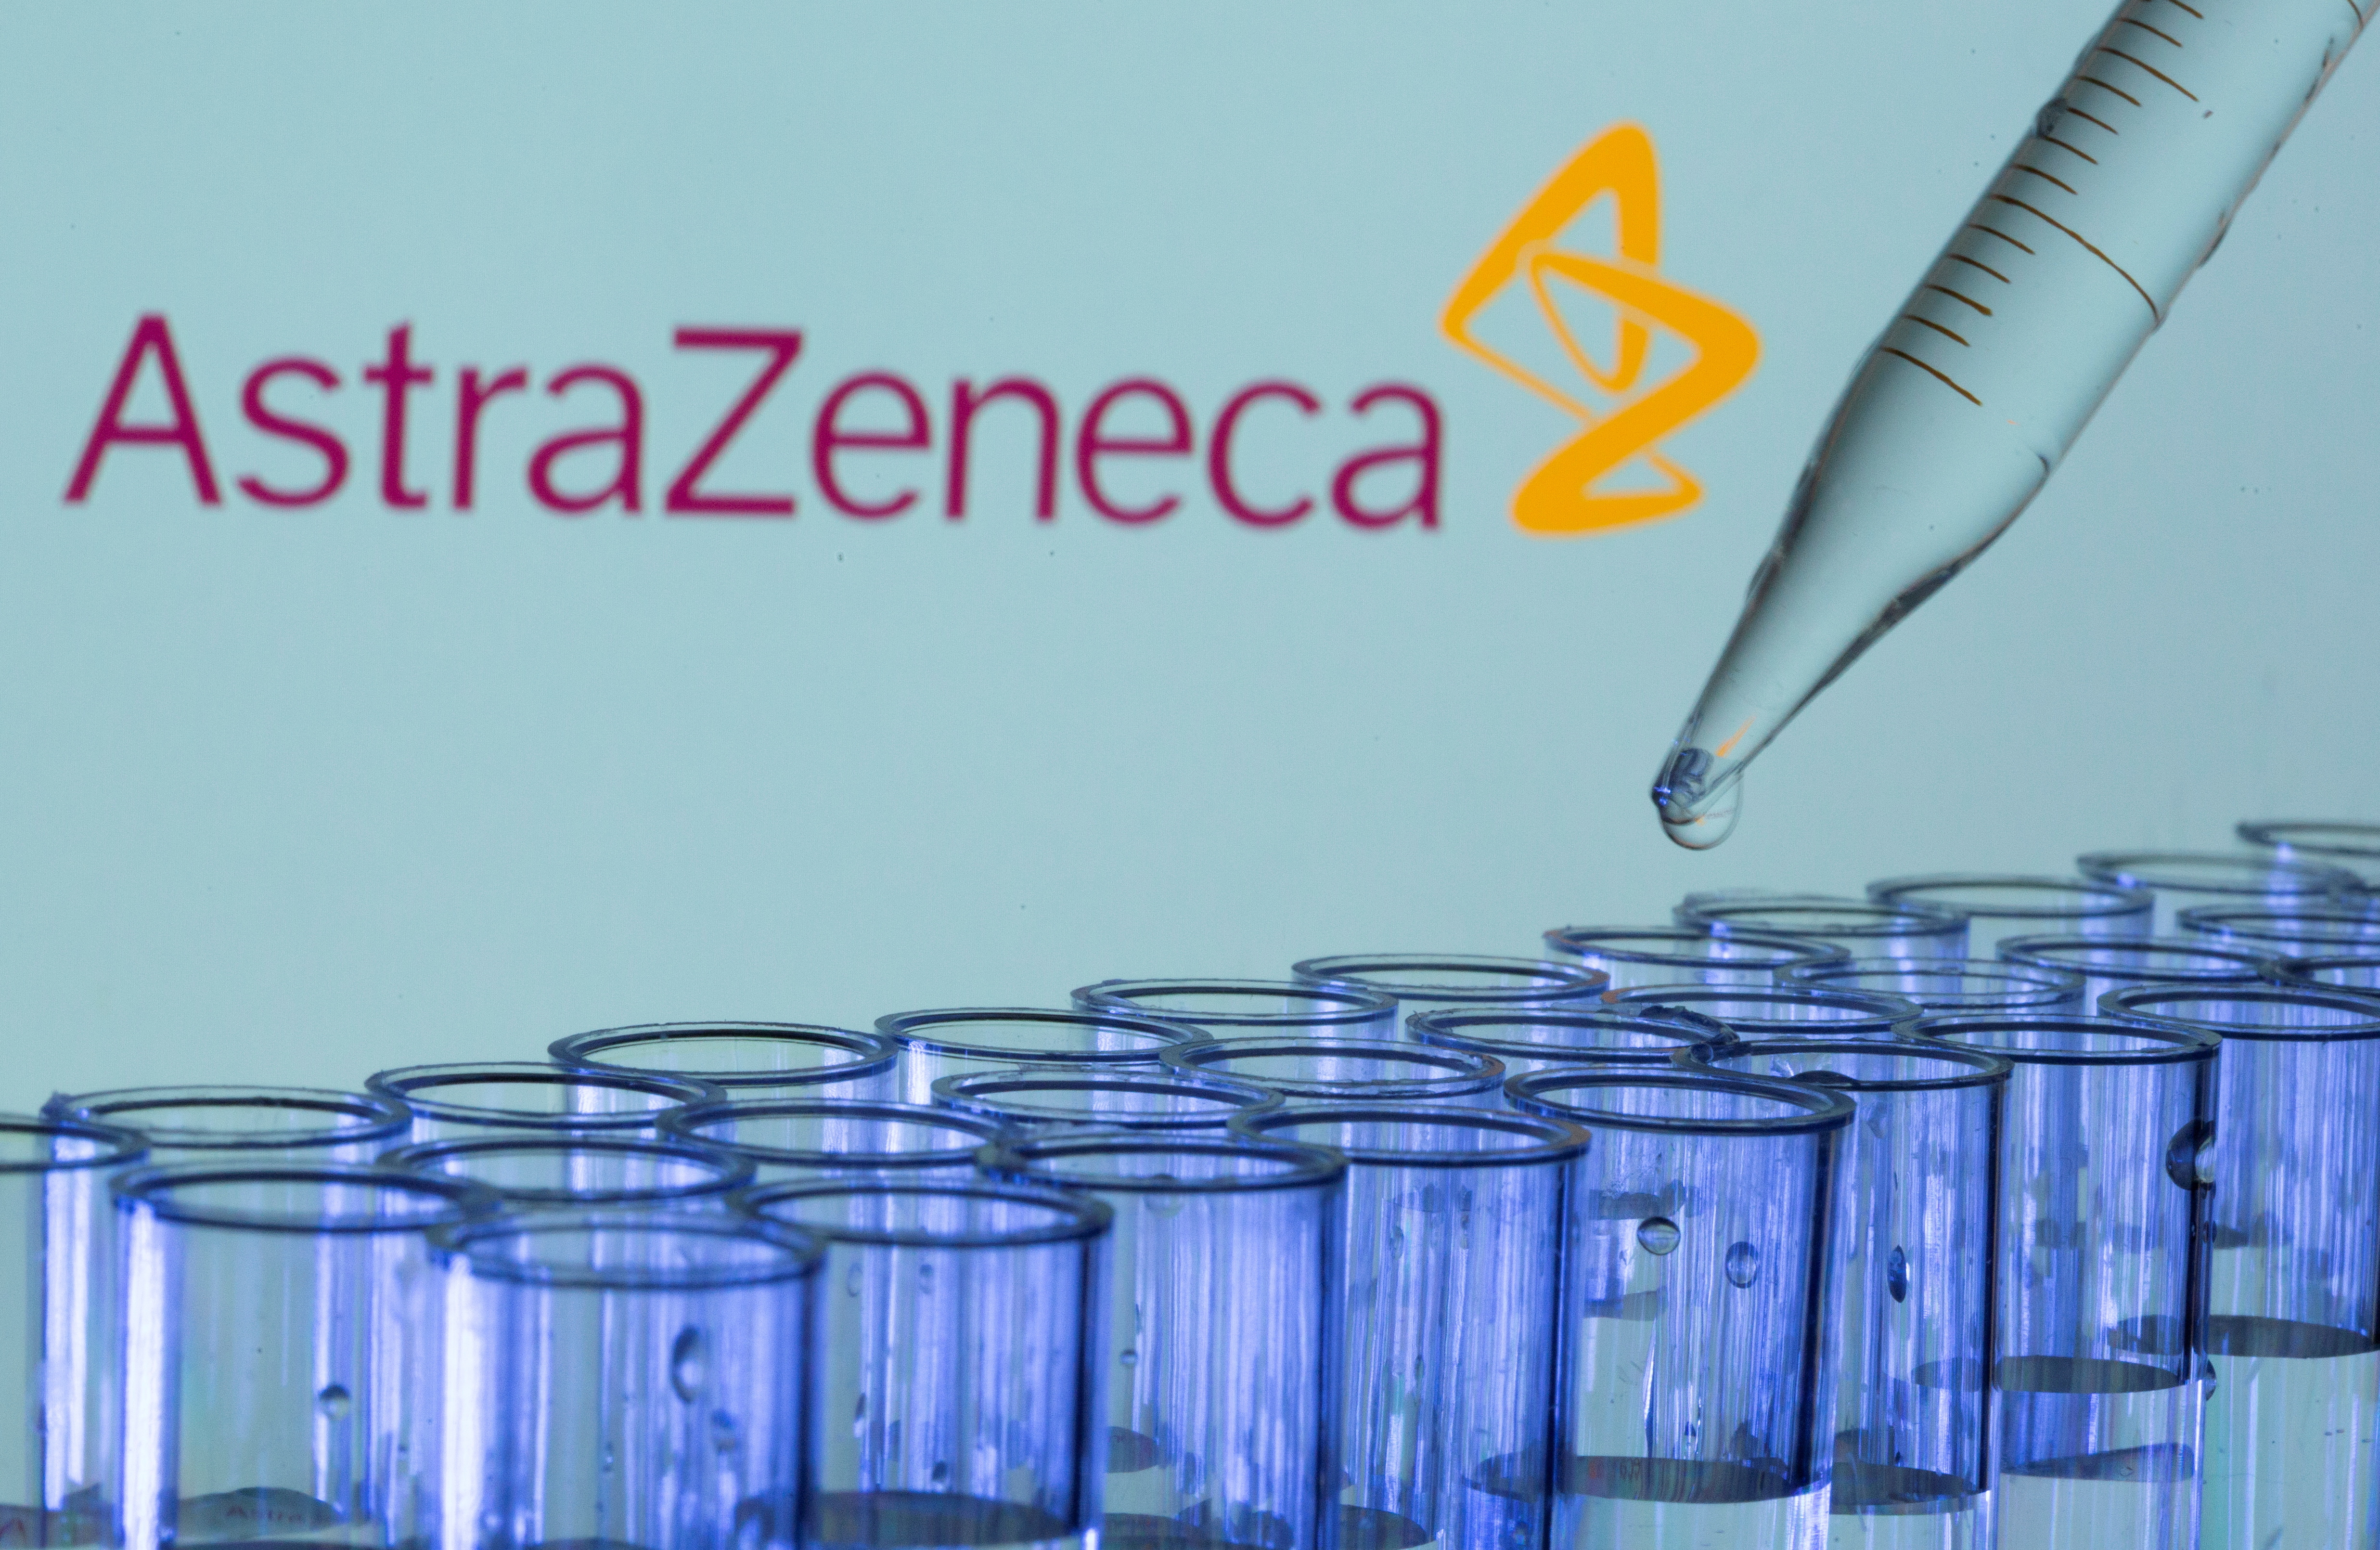 Test tubes are seen in front of a displayed AstraZeneca logo in this illustration taken, May 21, 2021. REUTERS/Dado Ruvic/Illustration/File Photo